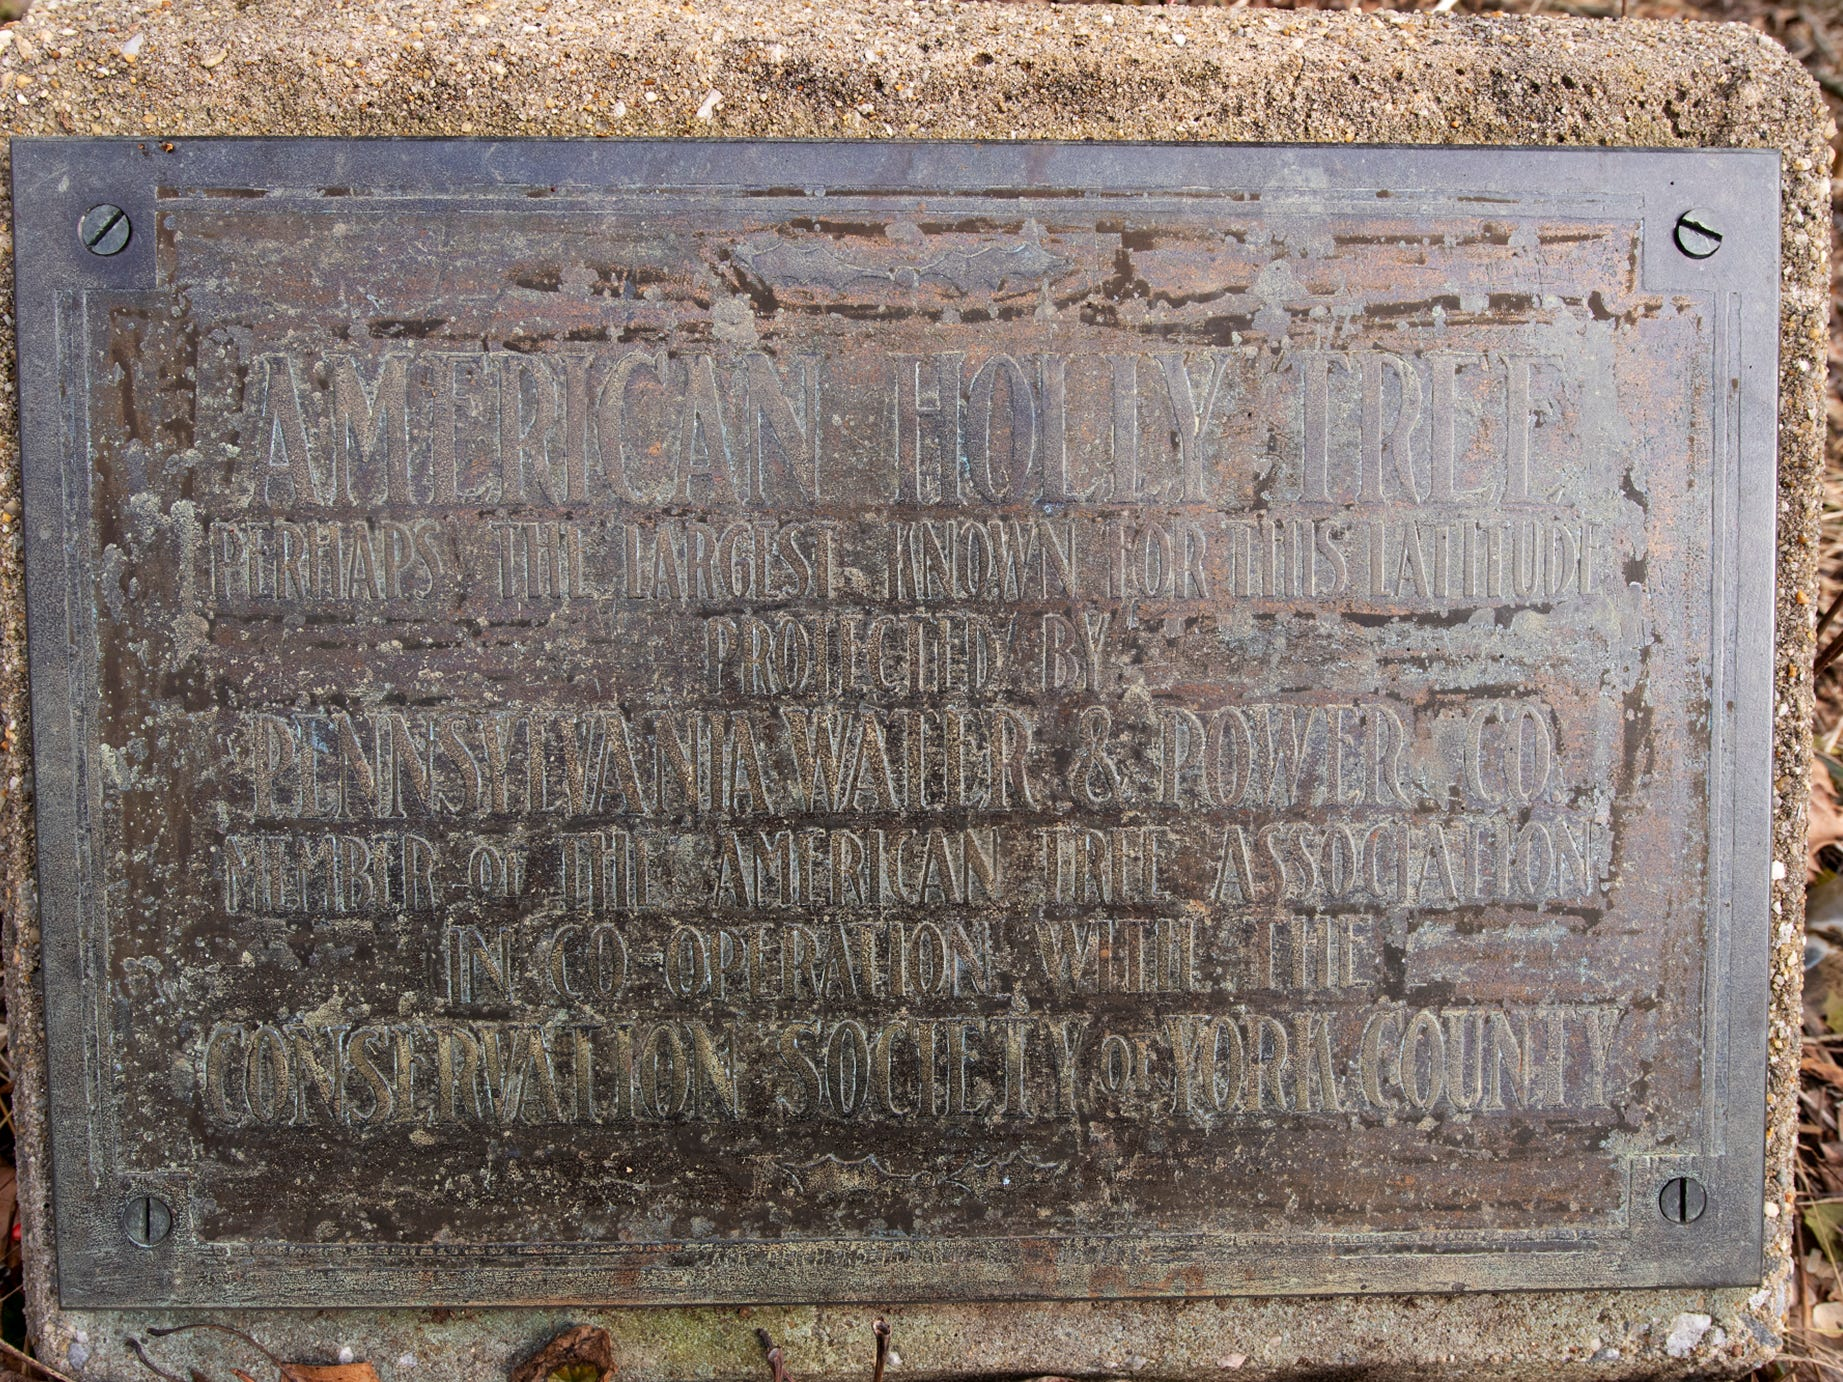 """A weathered sign beneath the American holly tree says, """"perhaps the largest known for this altitude."""" The tree, believed to be 350 years old, is part of the Indian Steps Museum along the Susquehanna River in Lower Chanceford Township."""